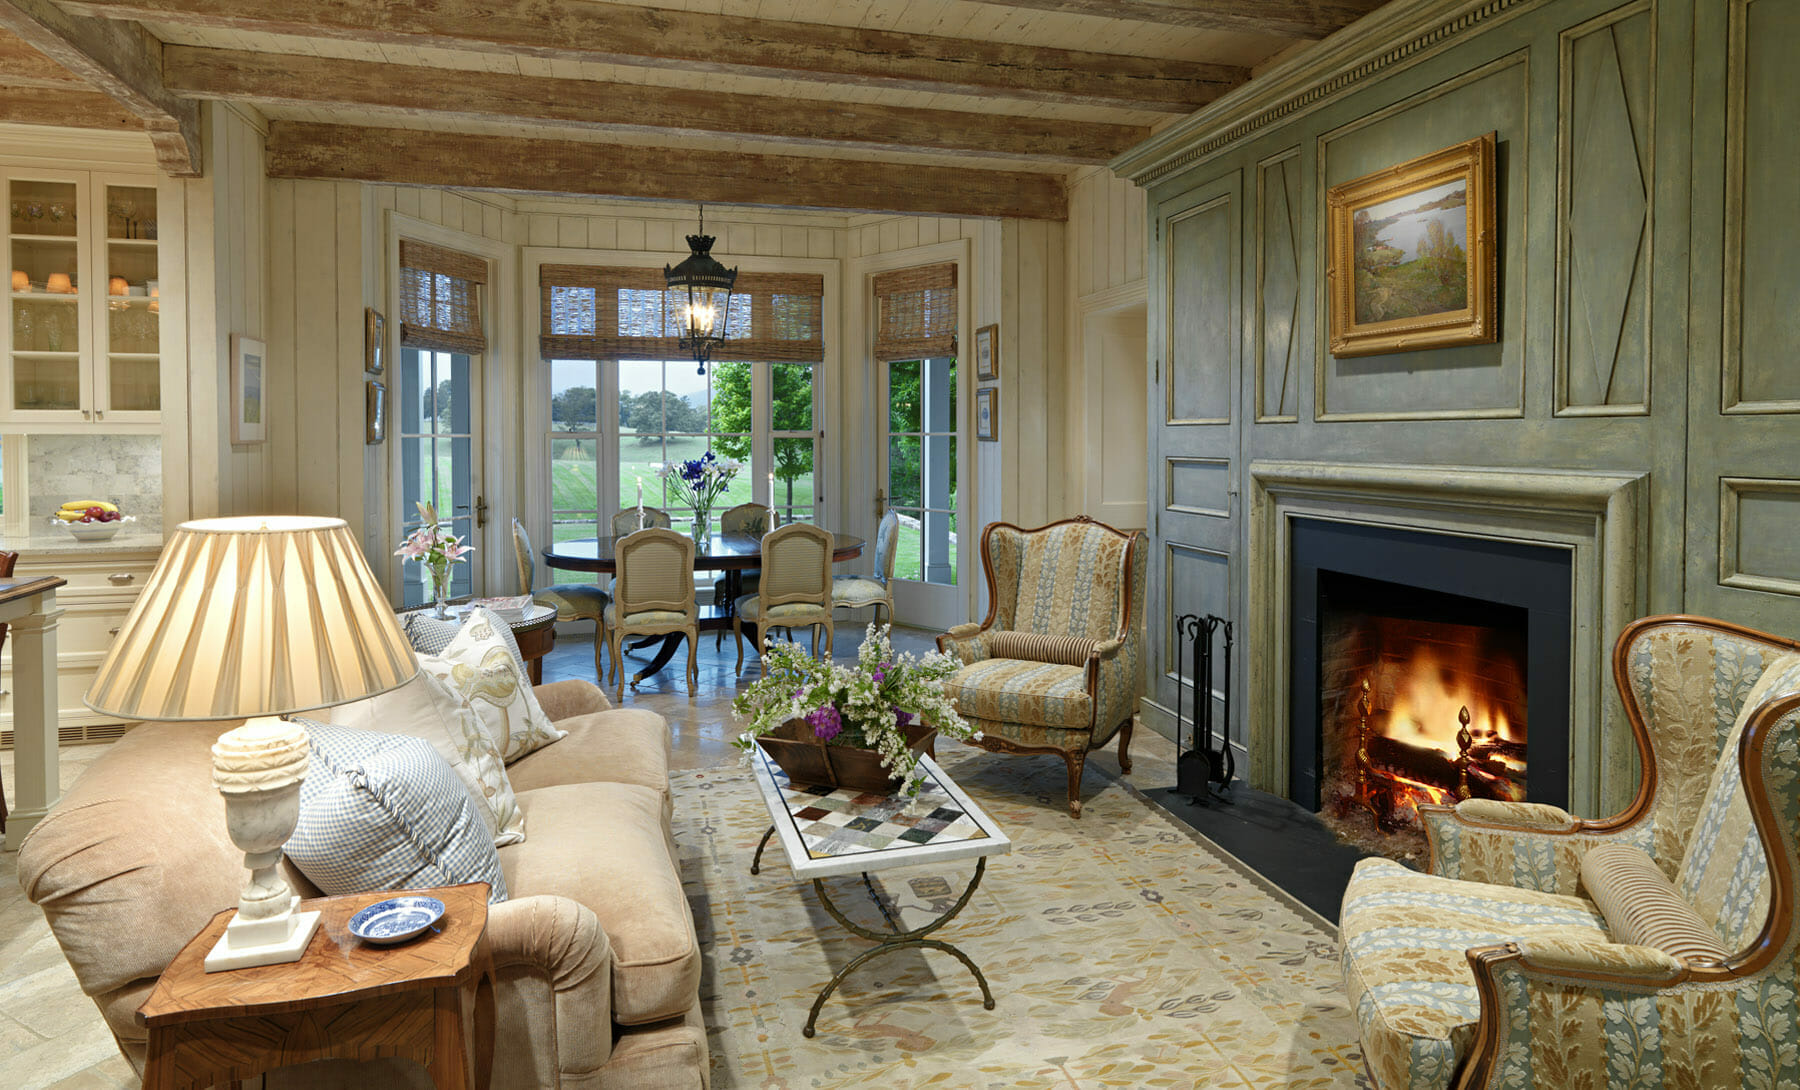 Living room with fireplace and exposed wooden beams built by GME builders in Charlottesville, Virginia.